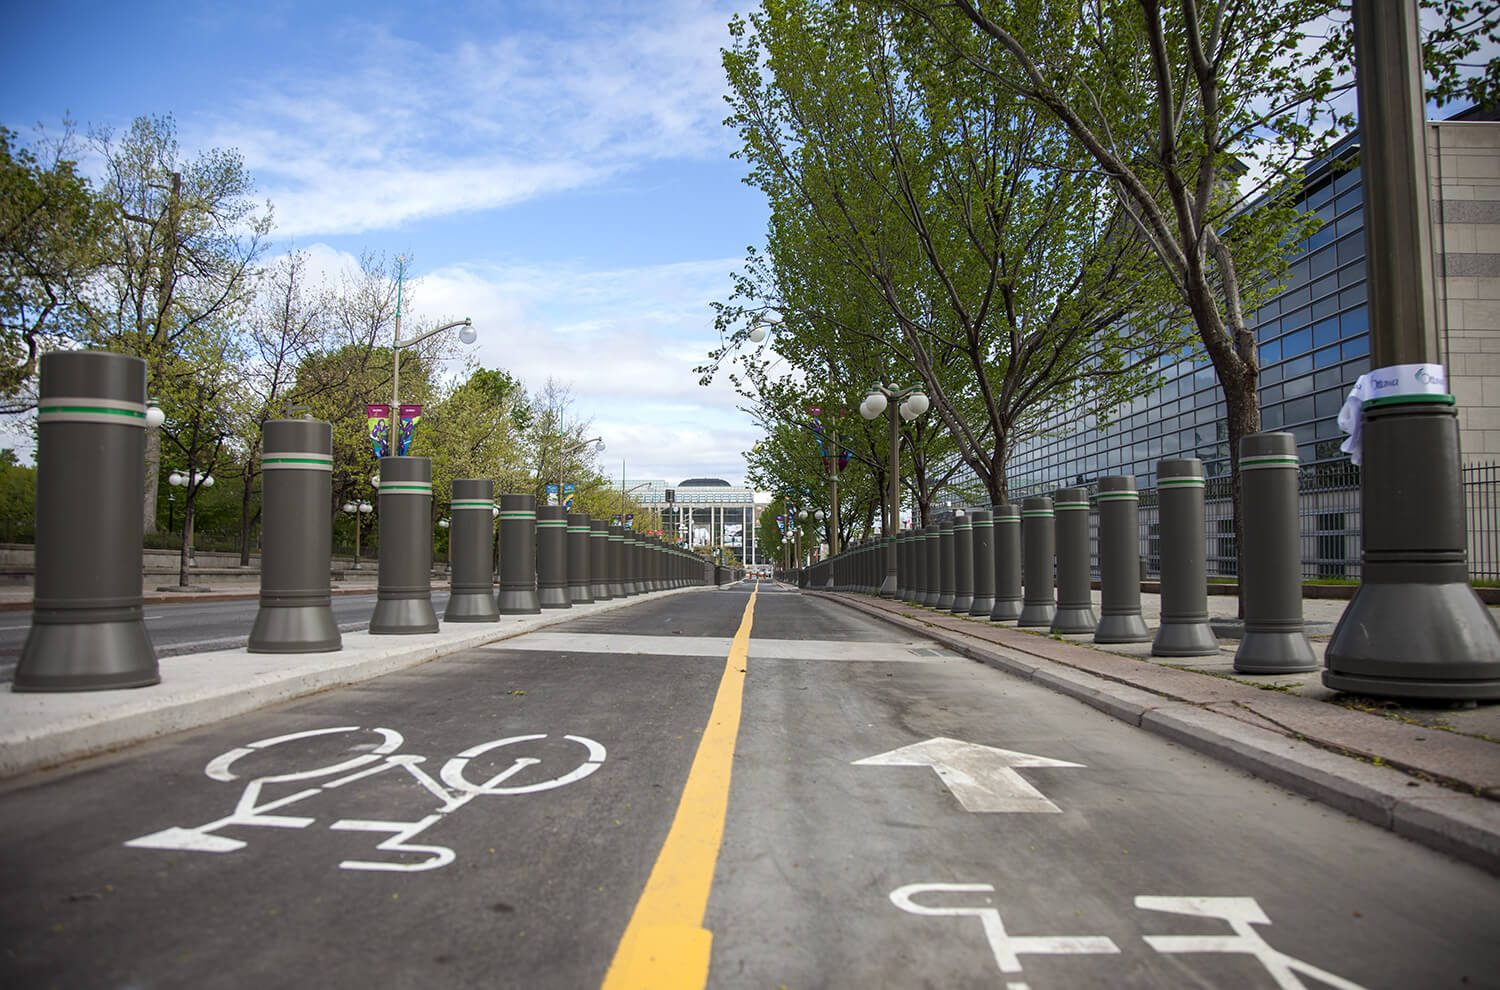 cycling lane